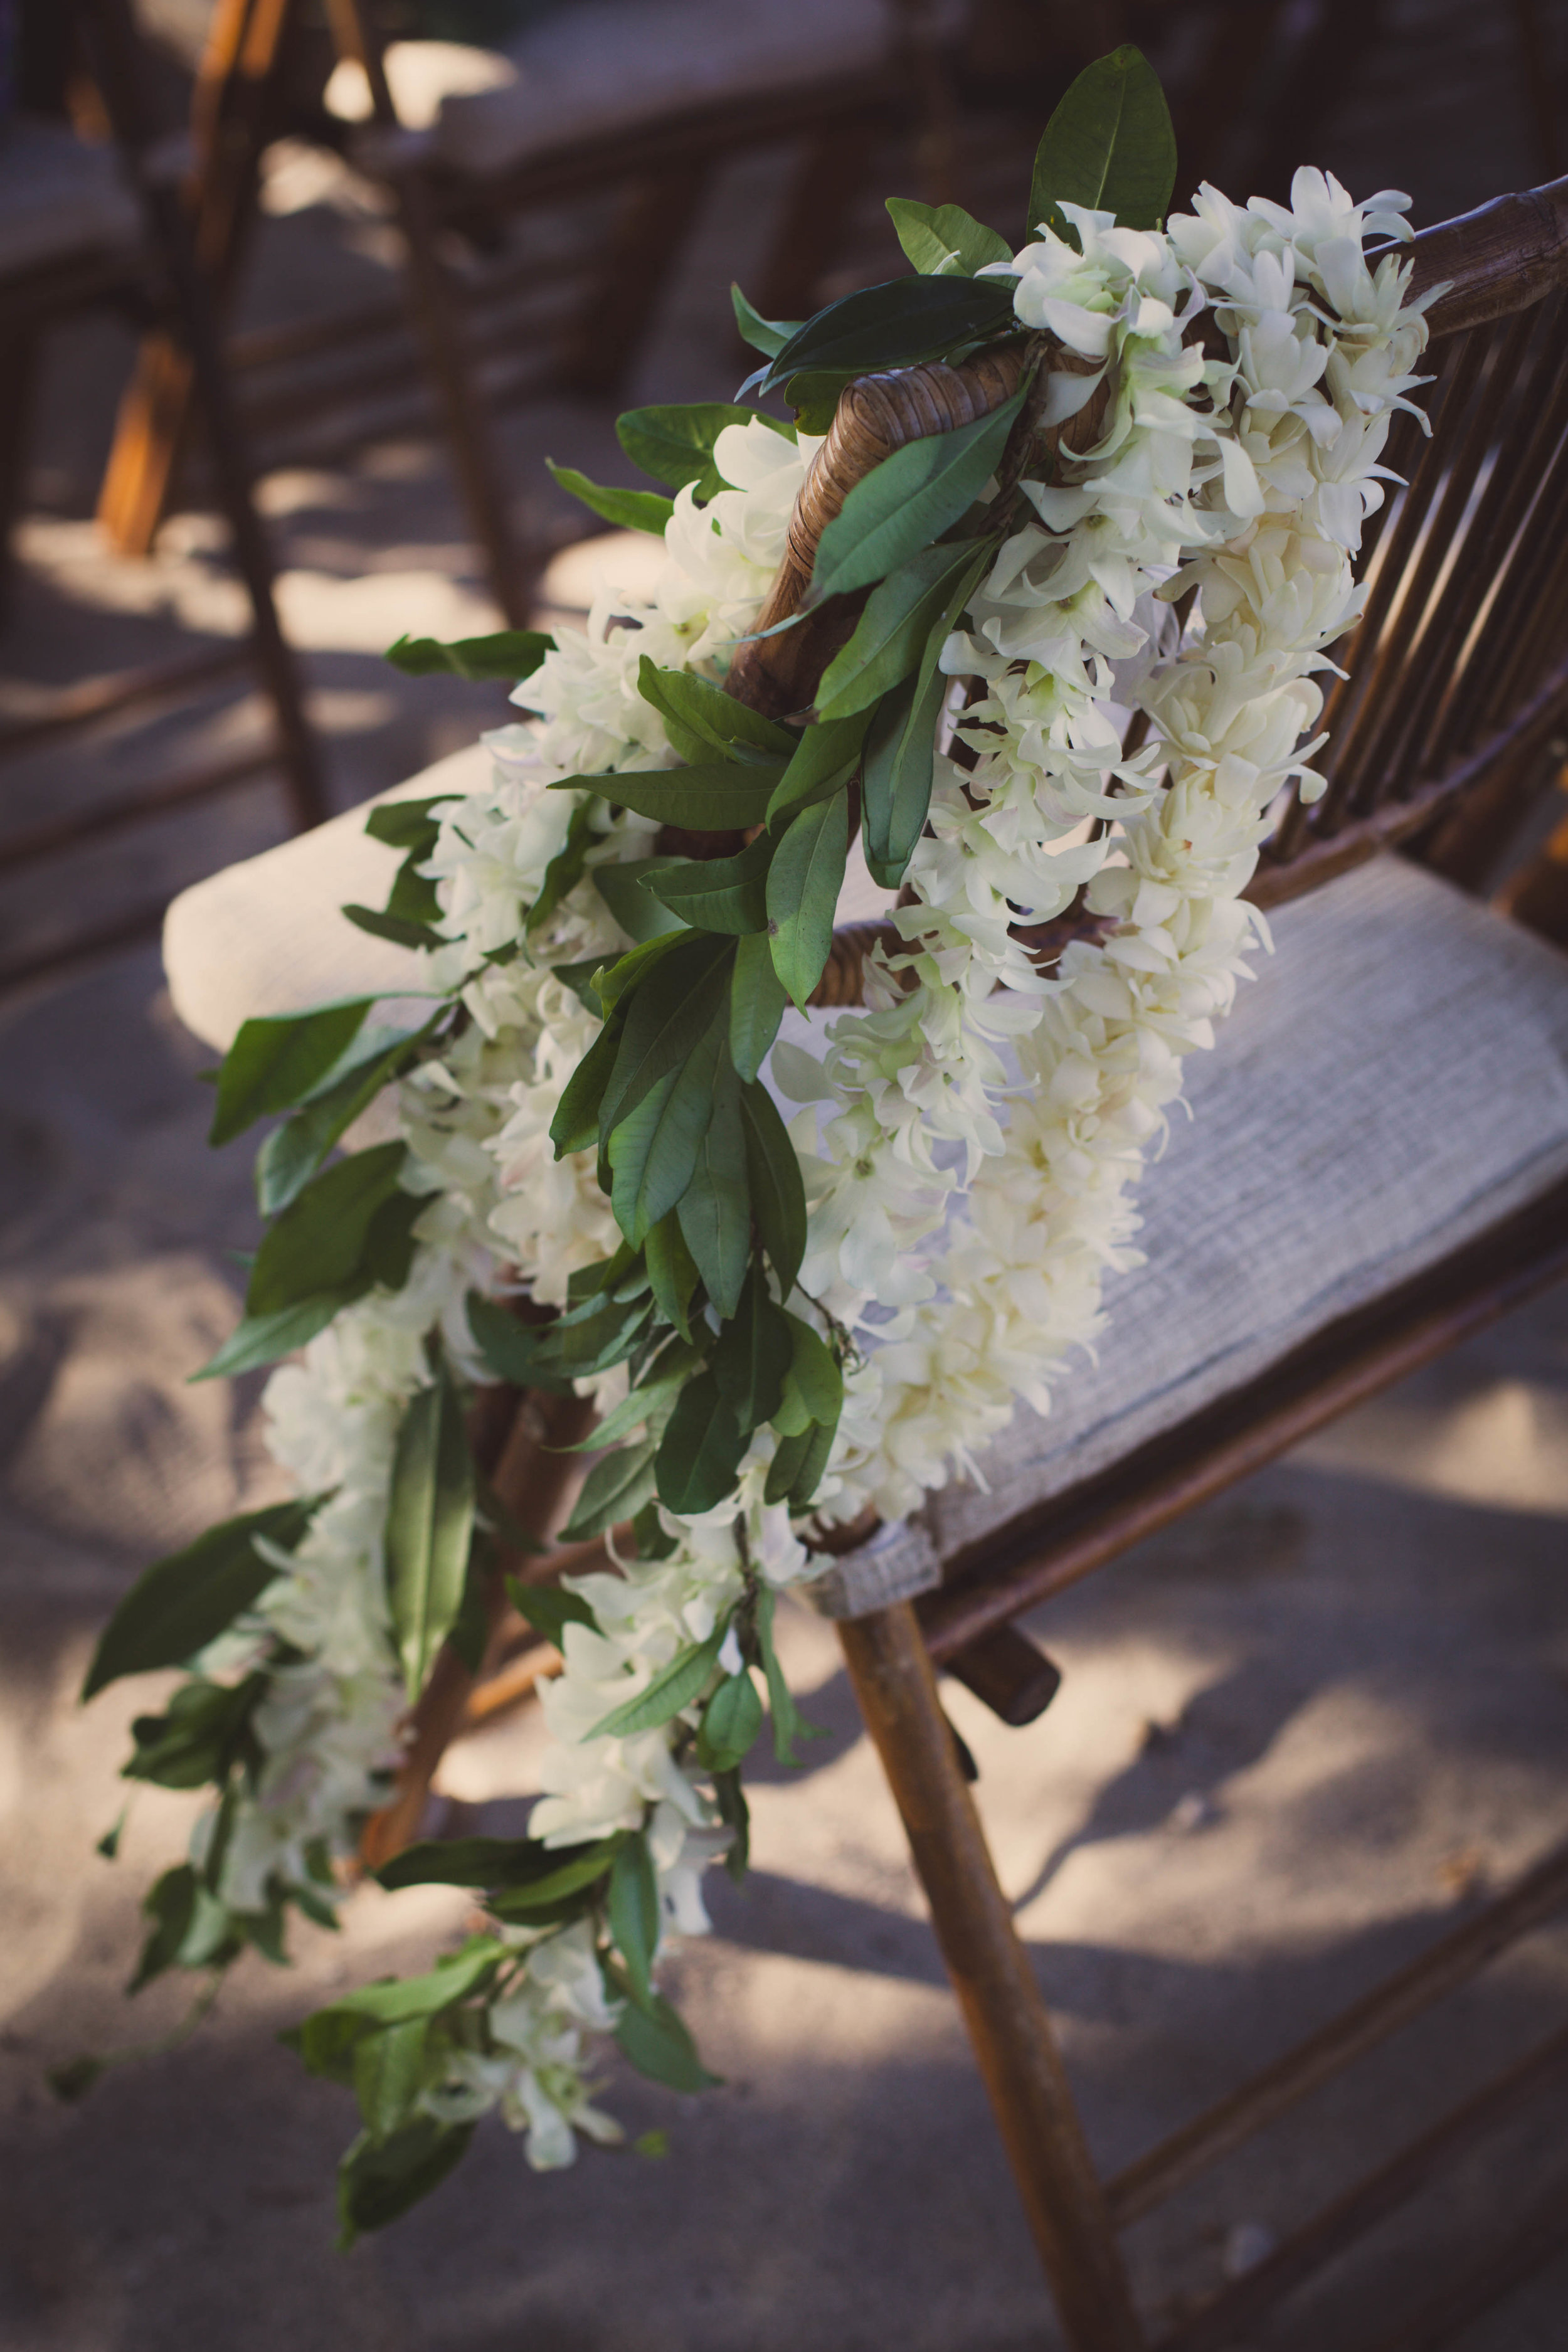 big island hawaii fairmont orchid beach wedding © kelilina photography 20170812172206-1.jpg